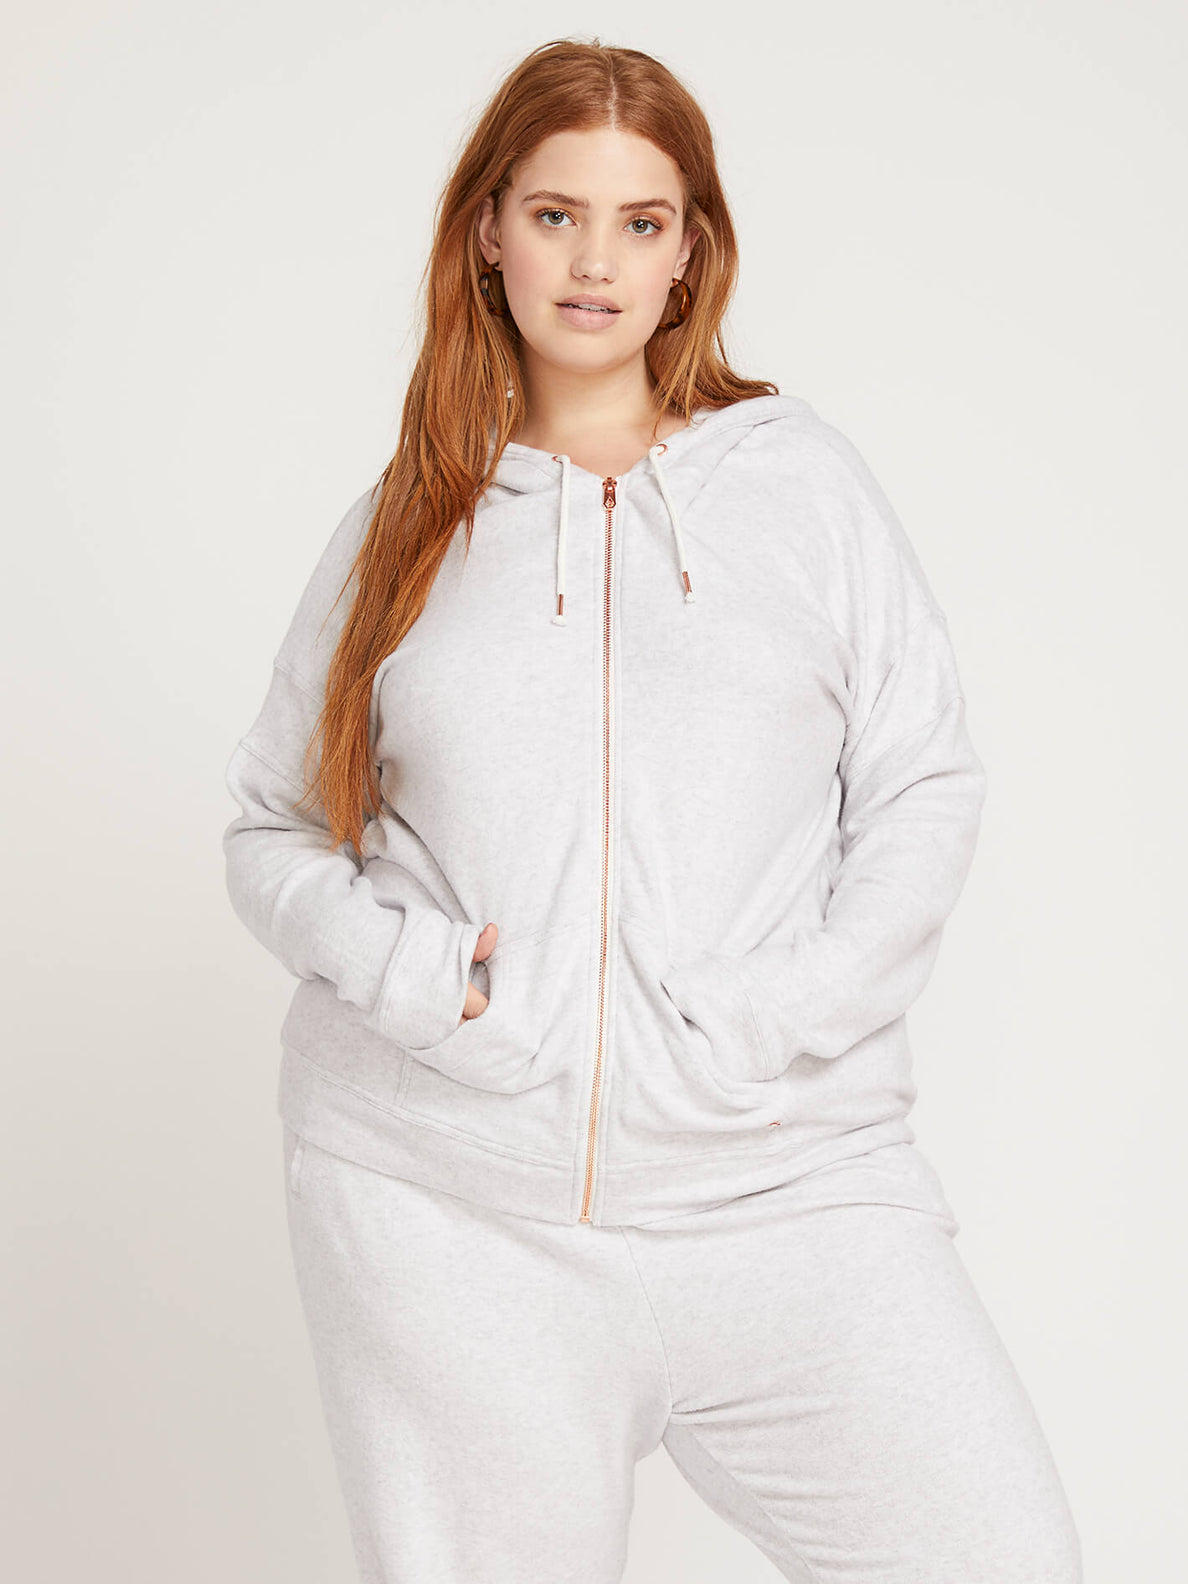 Lived In Lounge Zip Hoodie In Light Grey, Front Plus Size View